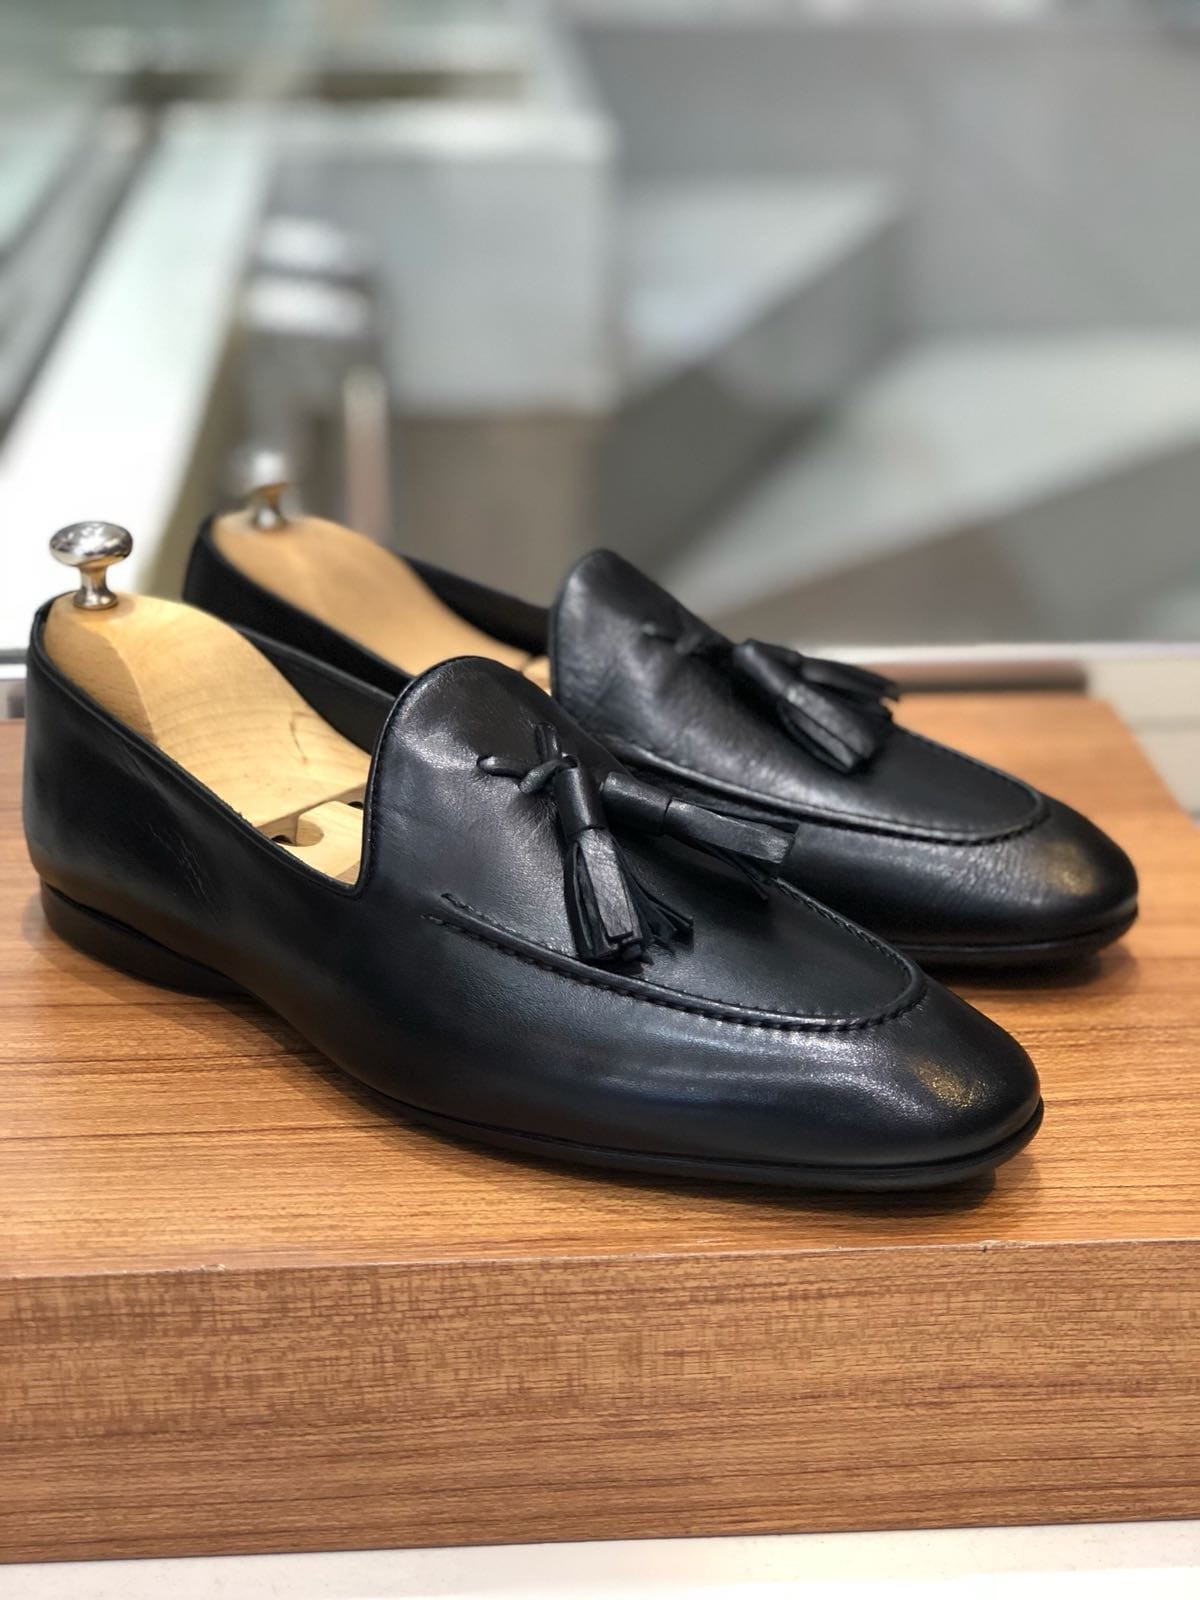 683ac42d552 Black Calf Leather Tassel Loafer by Gentwith.com with Free Shipping